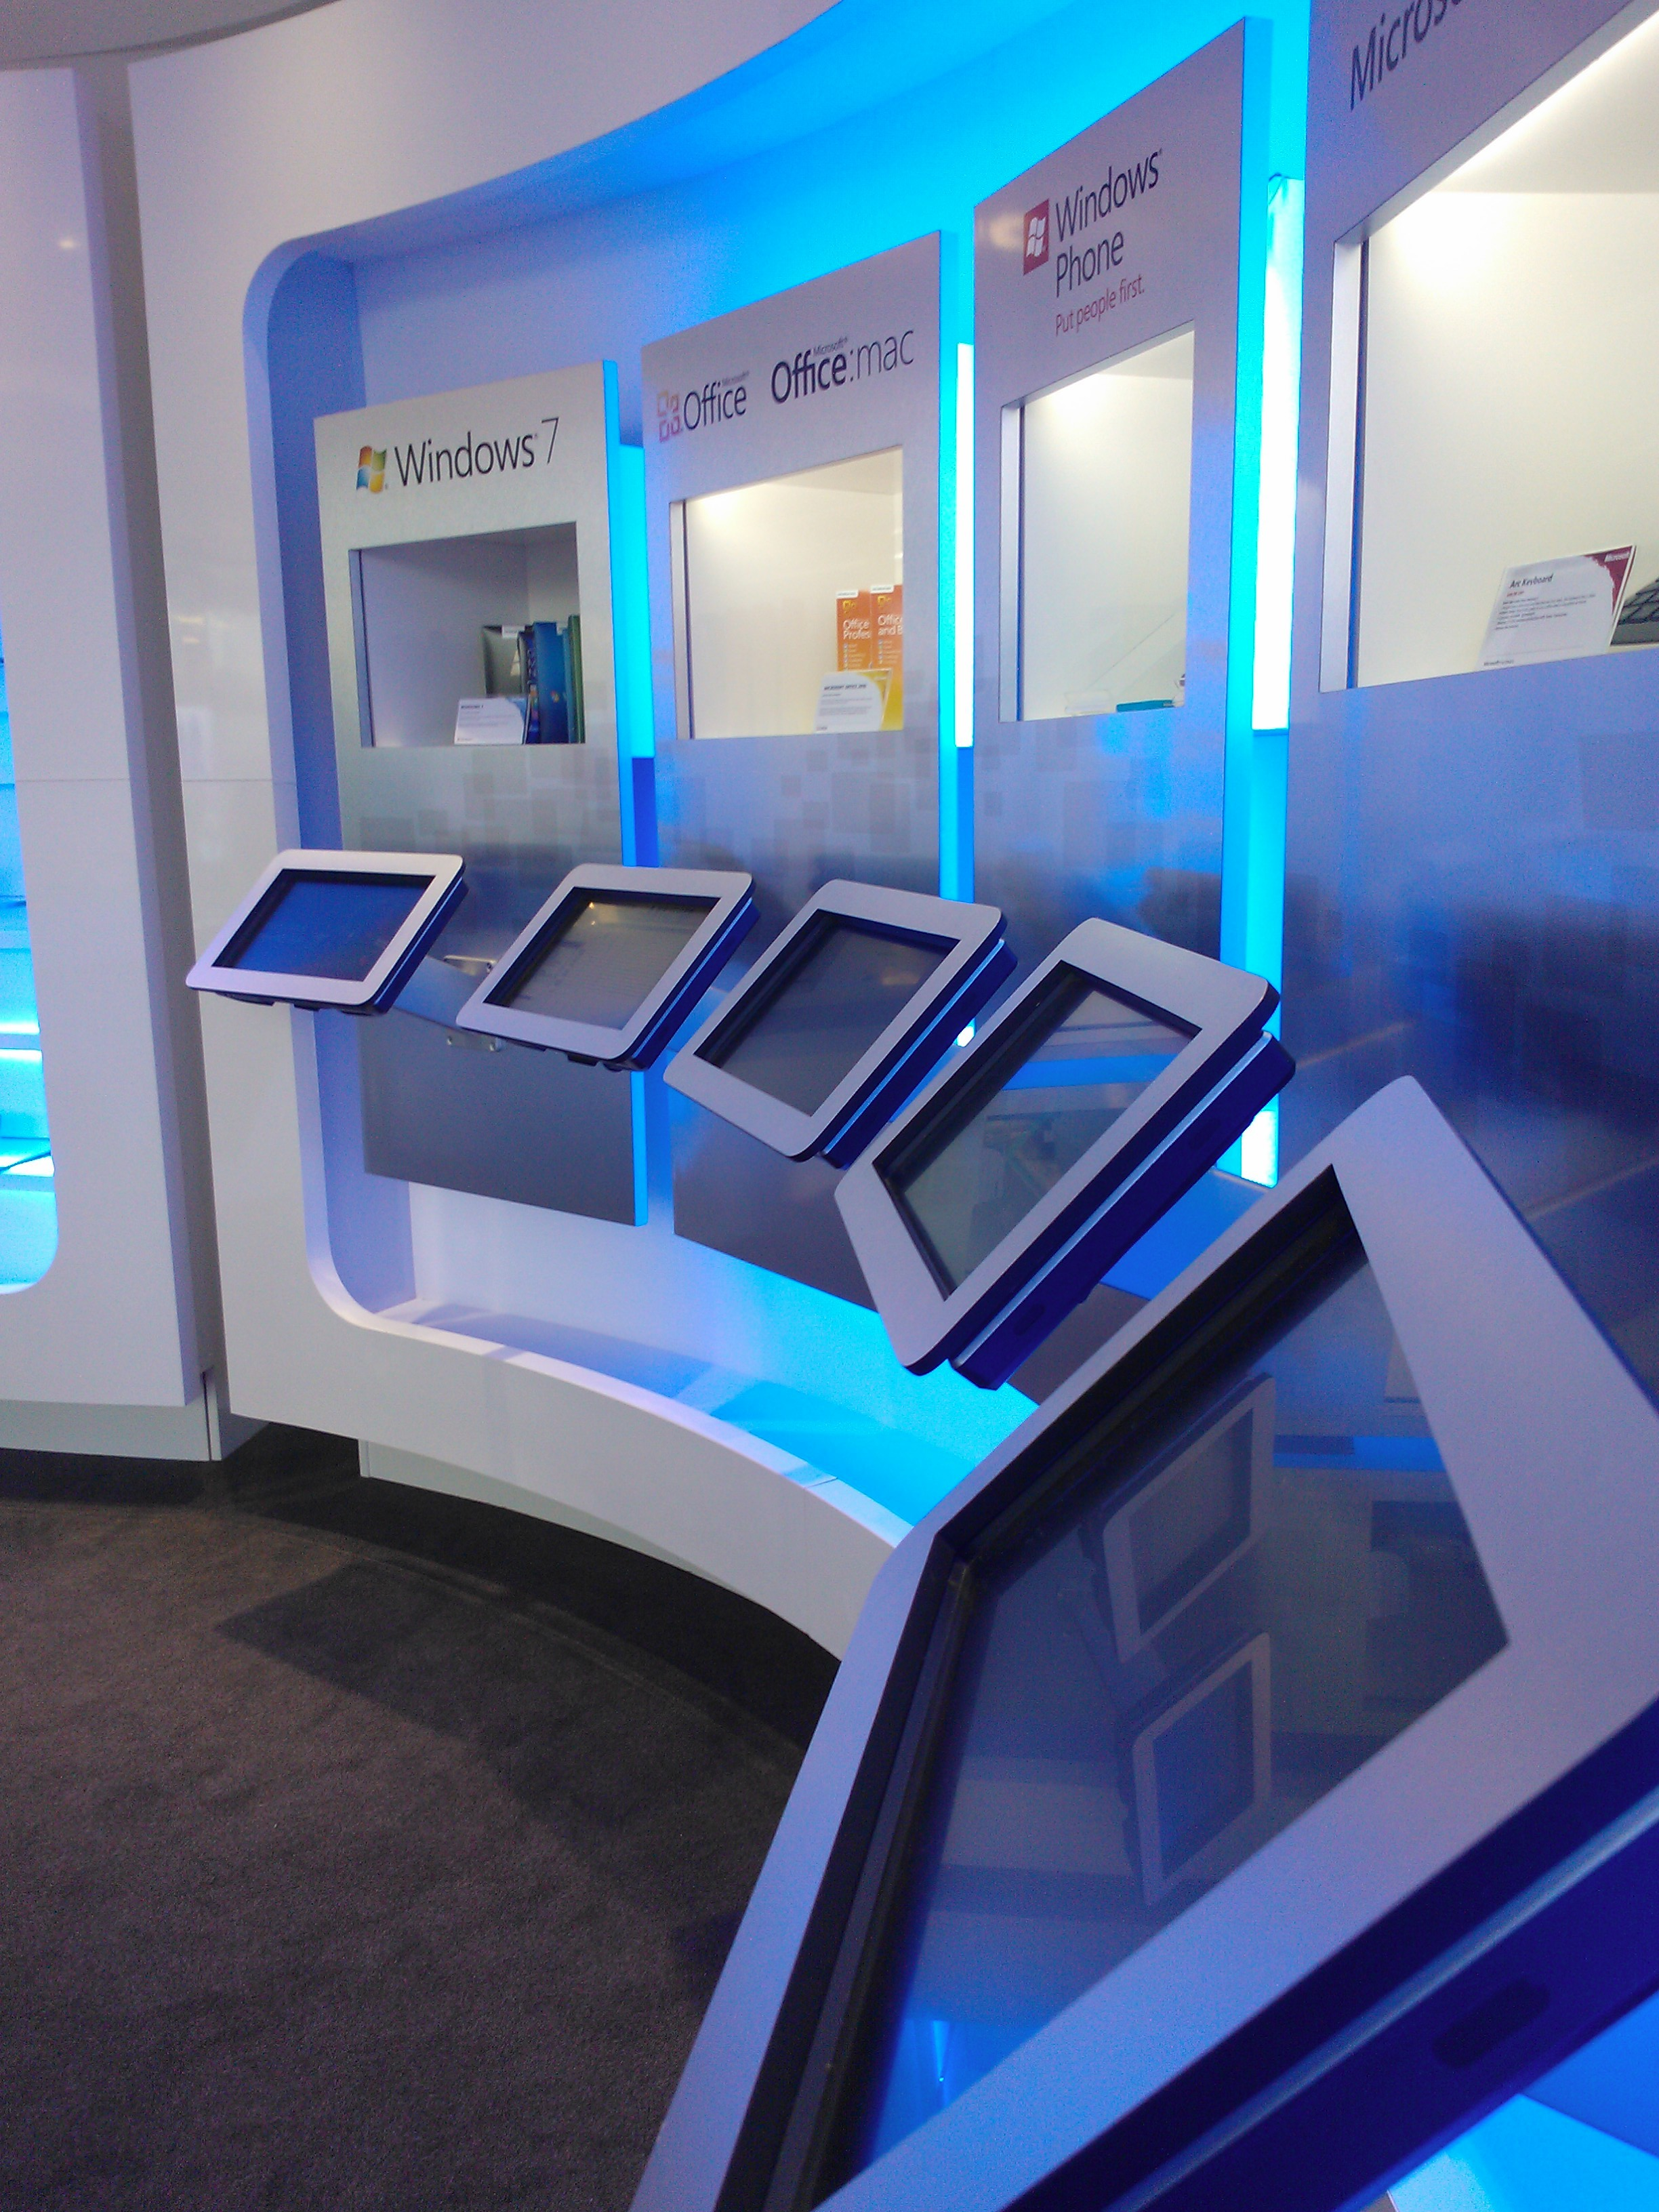 Microsoft Product Stand in Main Lobby